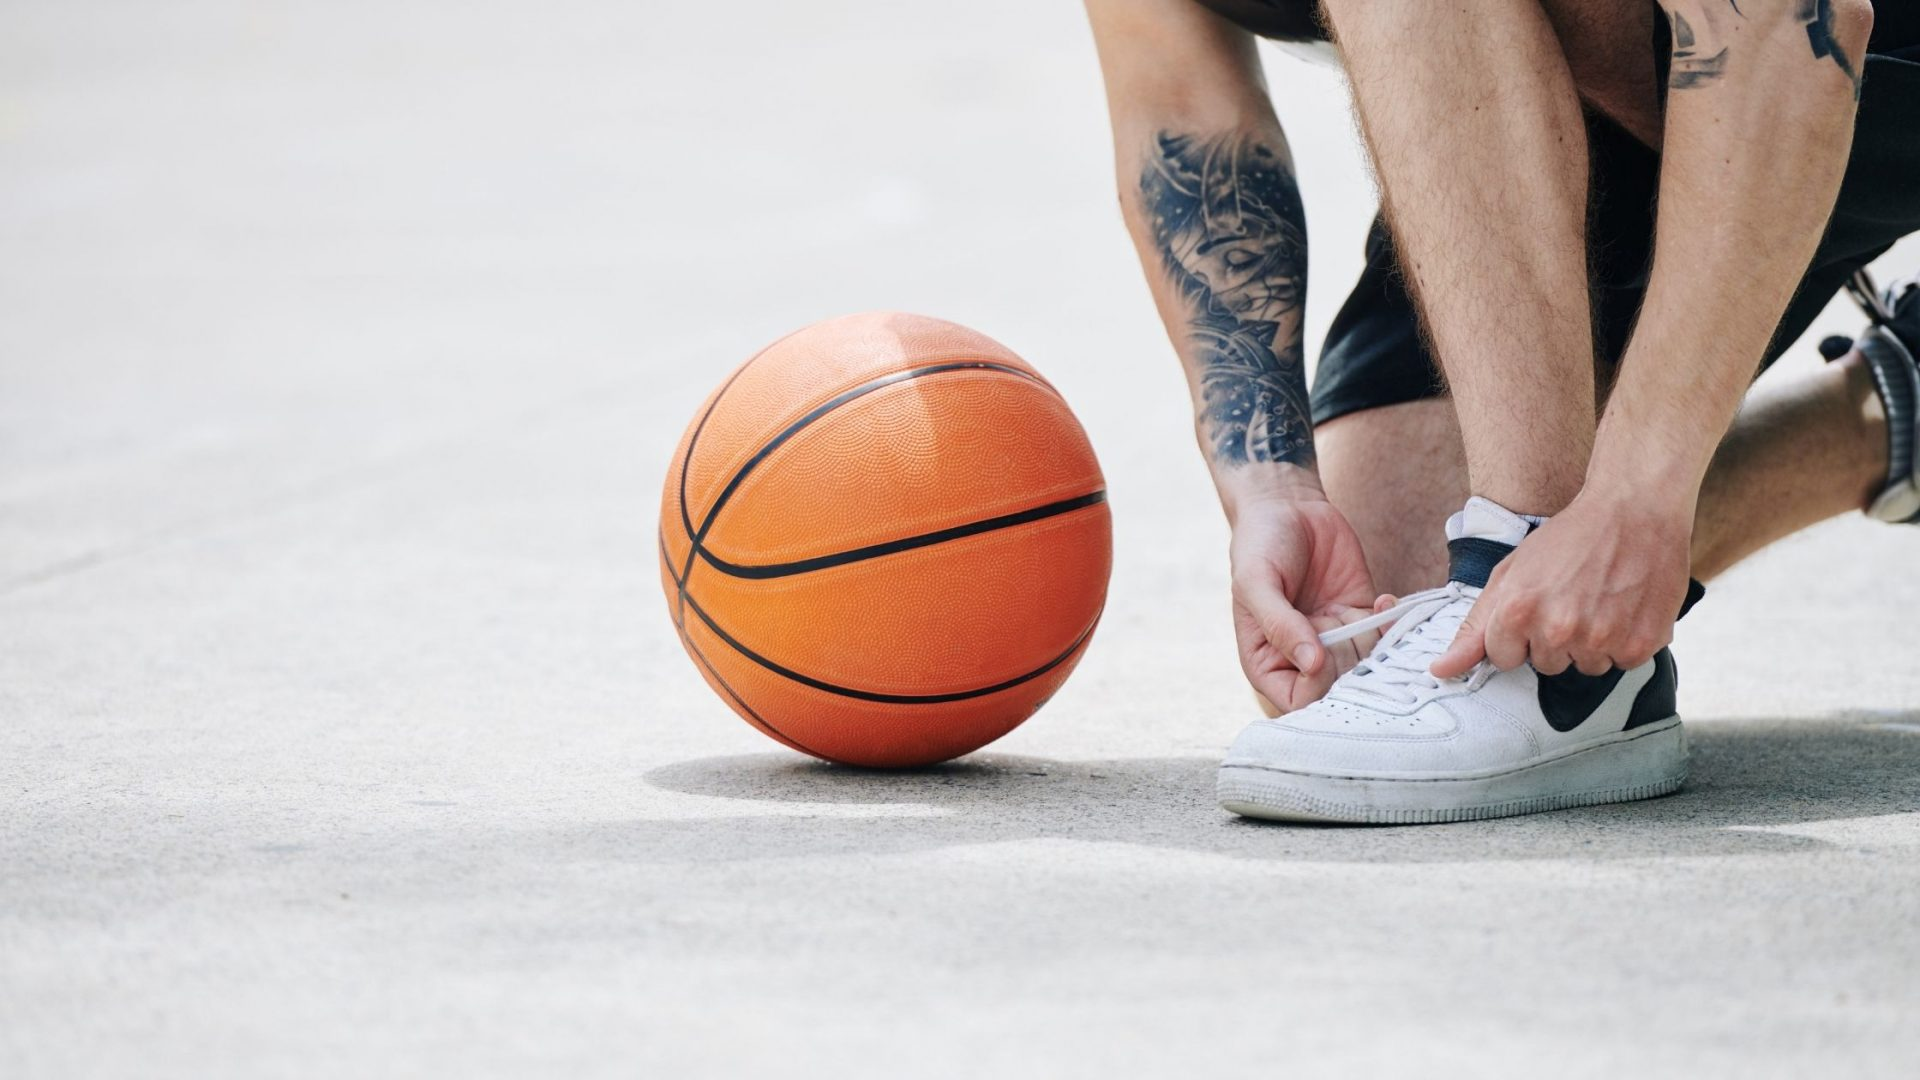 Best Outdoor Basketball Shoes For 2021 Will Make Your Life Better